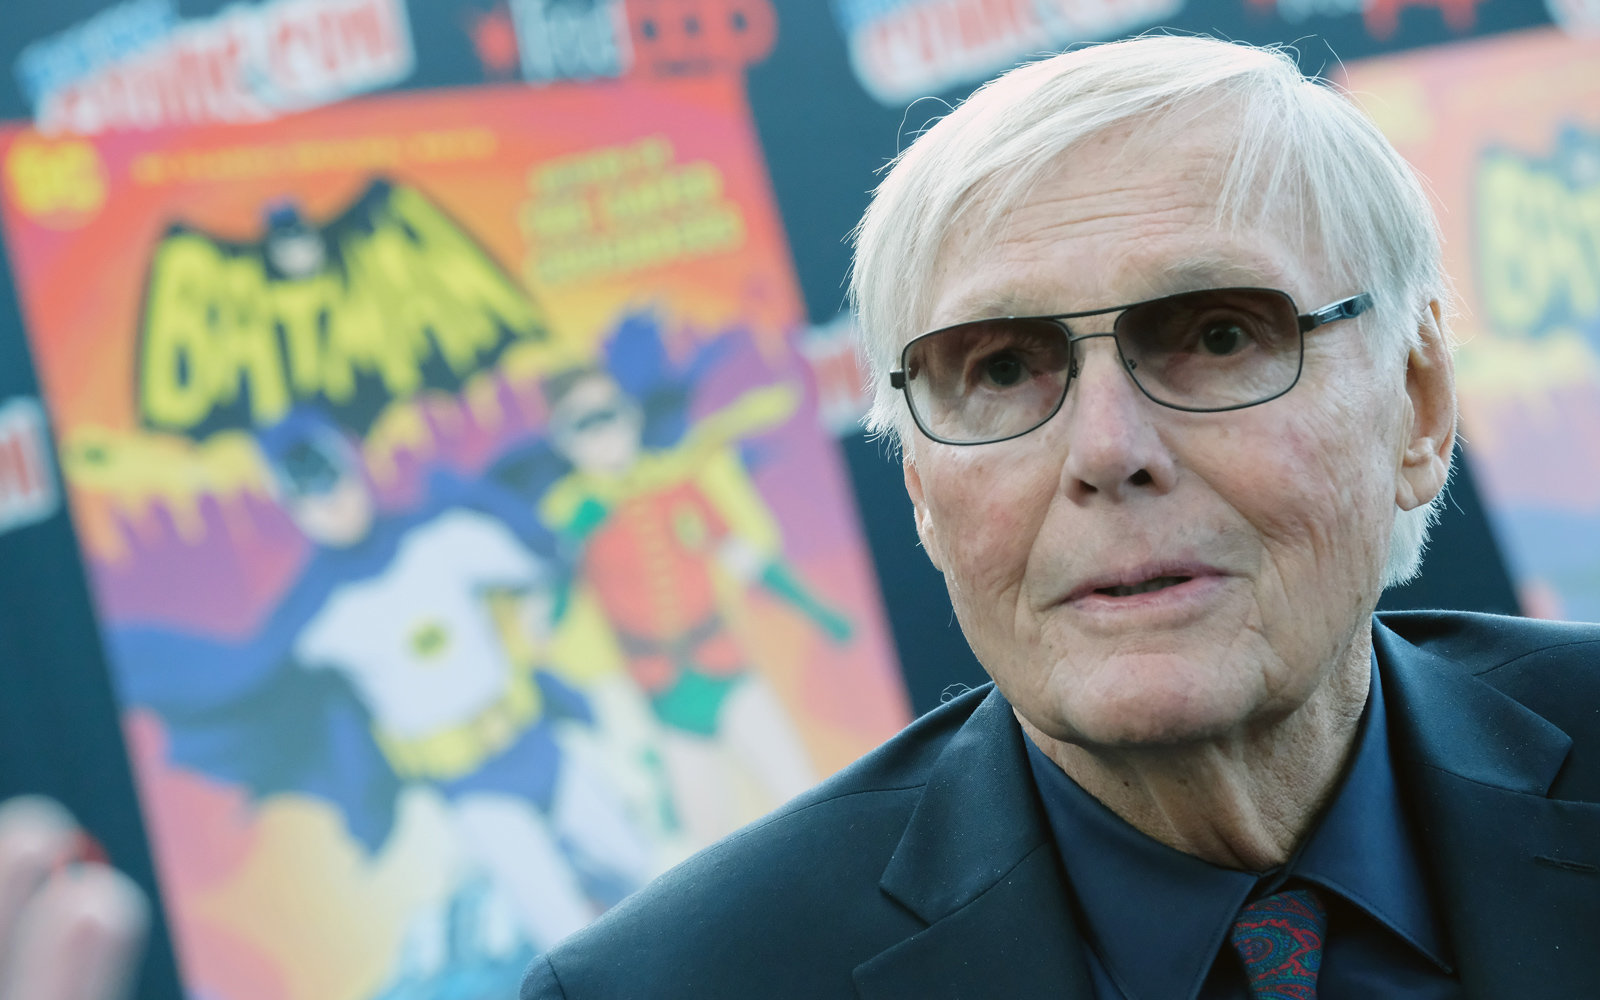 L.A. will light up the Bat-Signal in honor of Adam West.